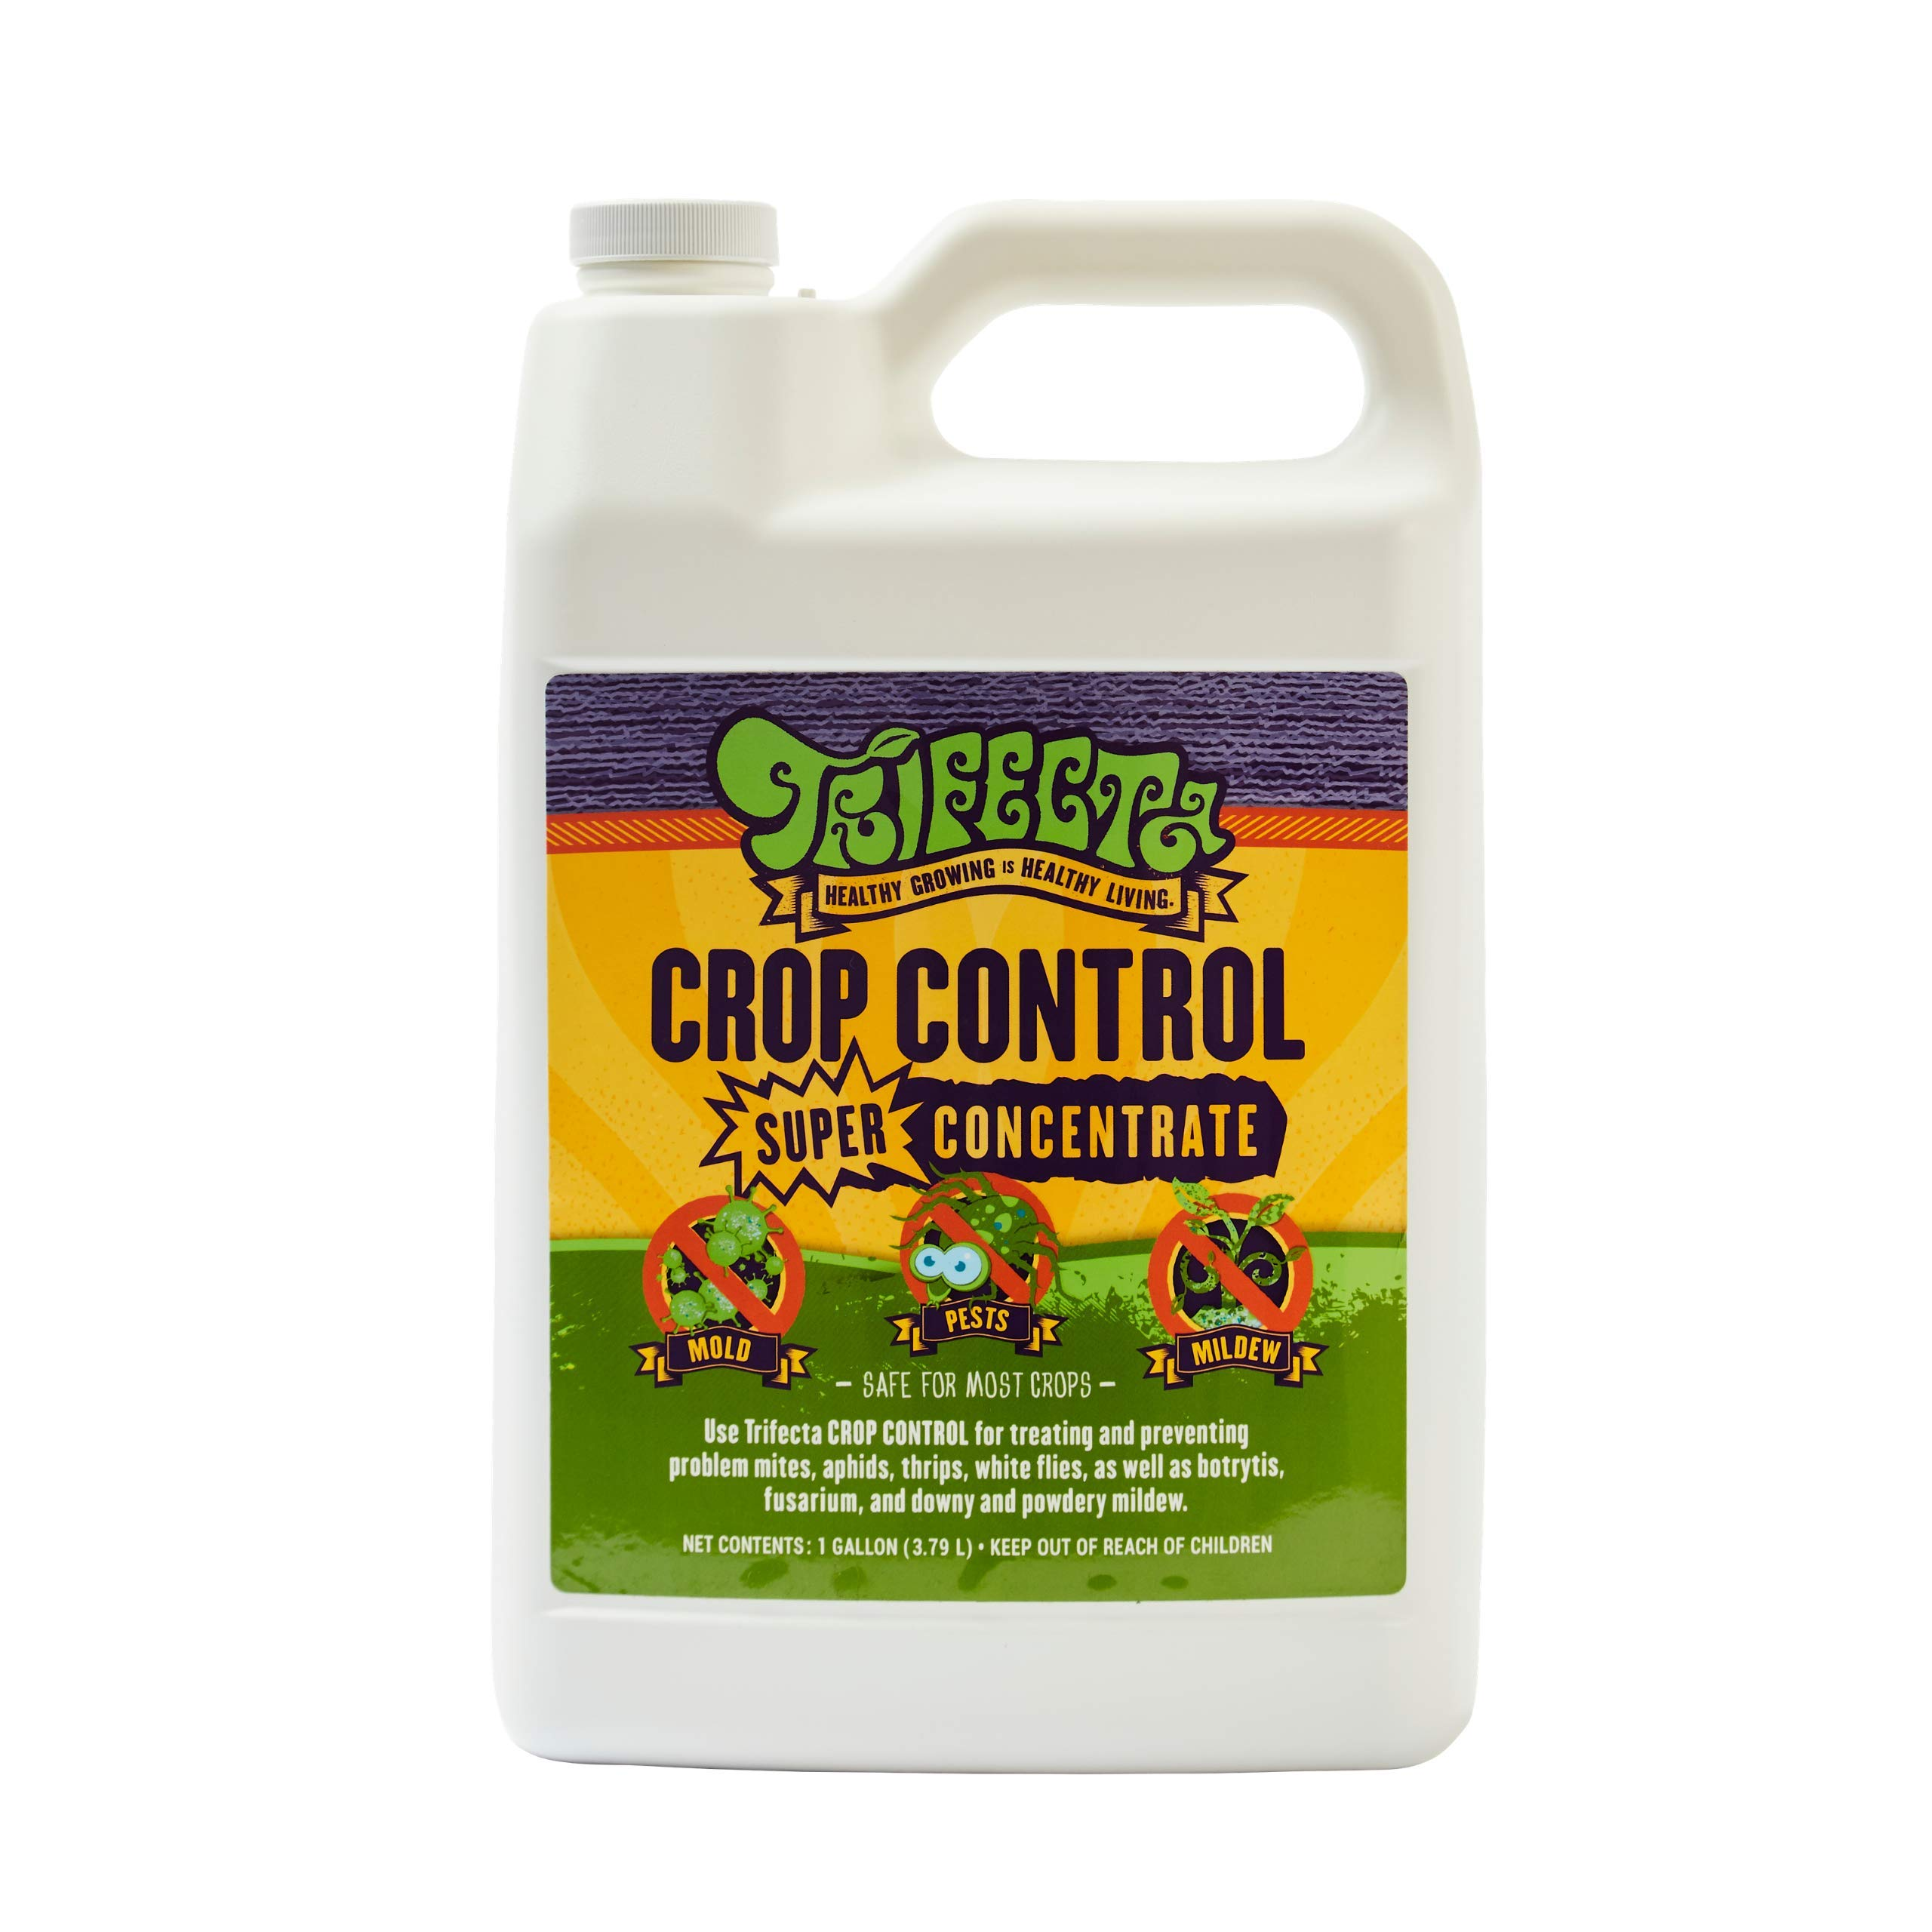 Trifecta Crop Control - Super-Concentrate - All-in-ONE Natural Pesticide, Fungicide, Miticide, Insecticide, Eliminate Spider Mites, Powdery Mildew, Botrytis, Mold Non-Toxic 128oz Gallon by Trifecta